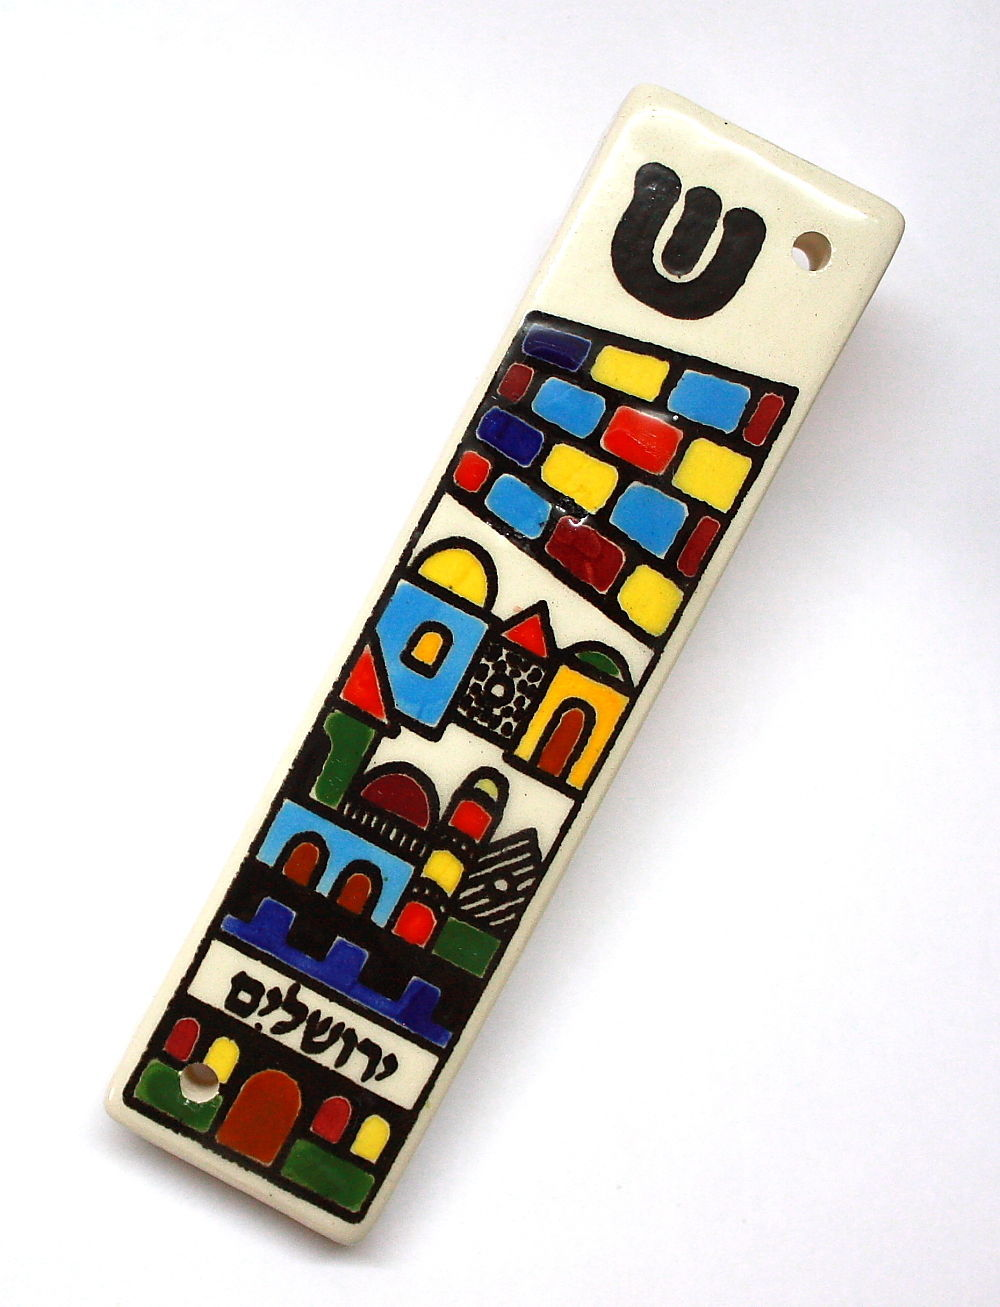 Armenian Ceramic Mezuzah Case 10 cm Colorful Jerusalem Design Judaica Israel